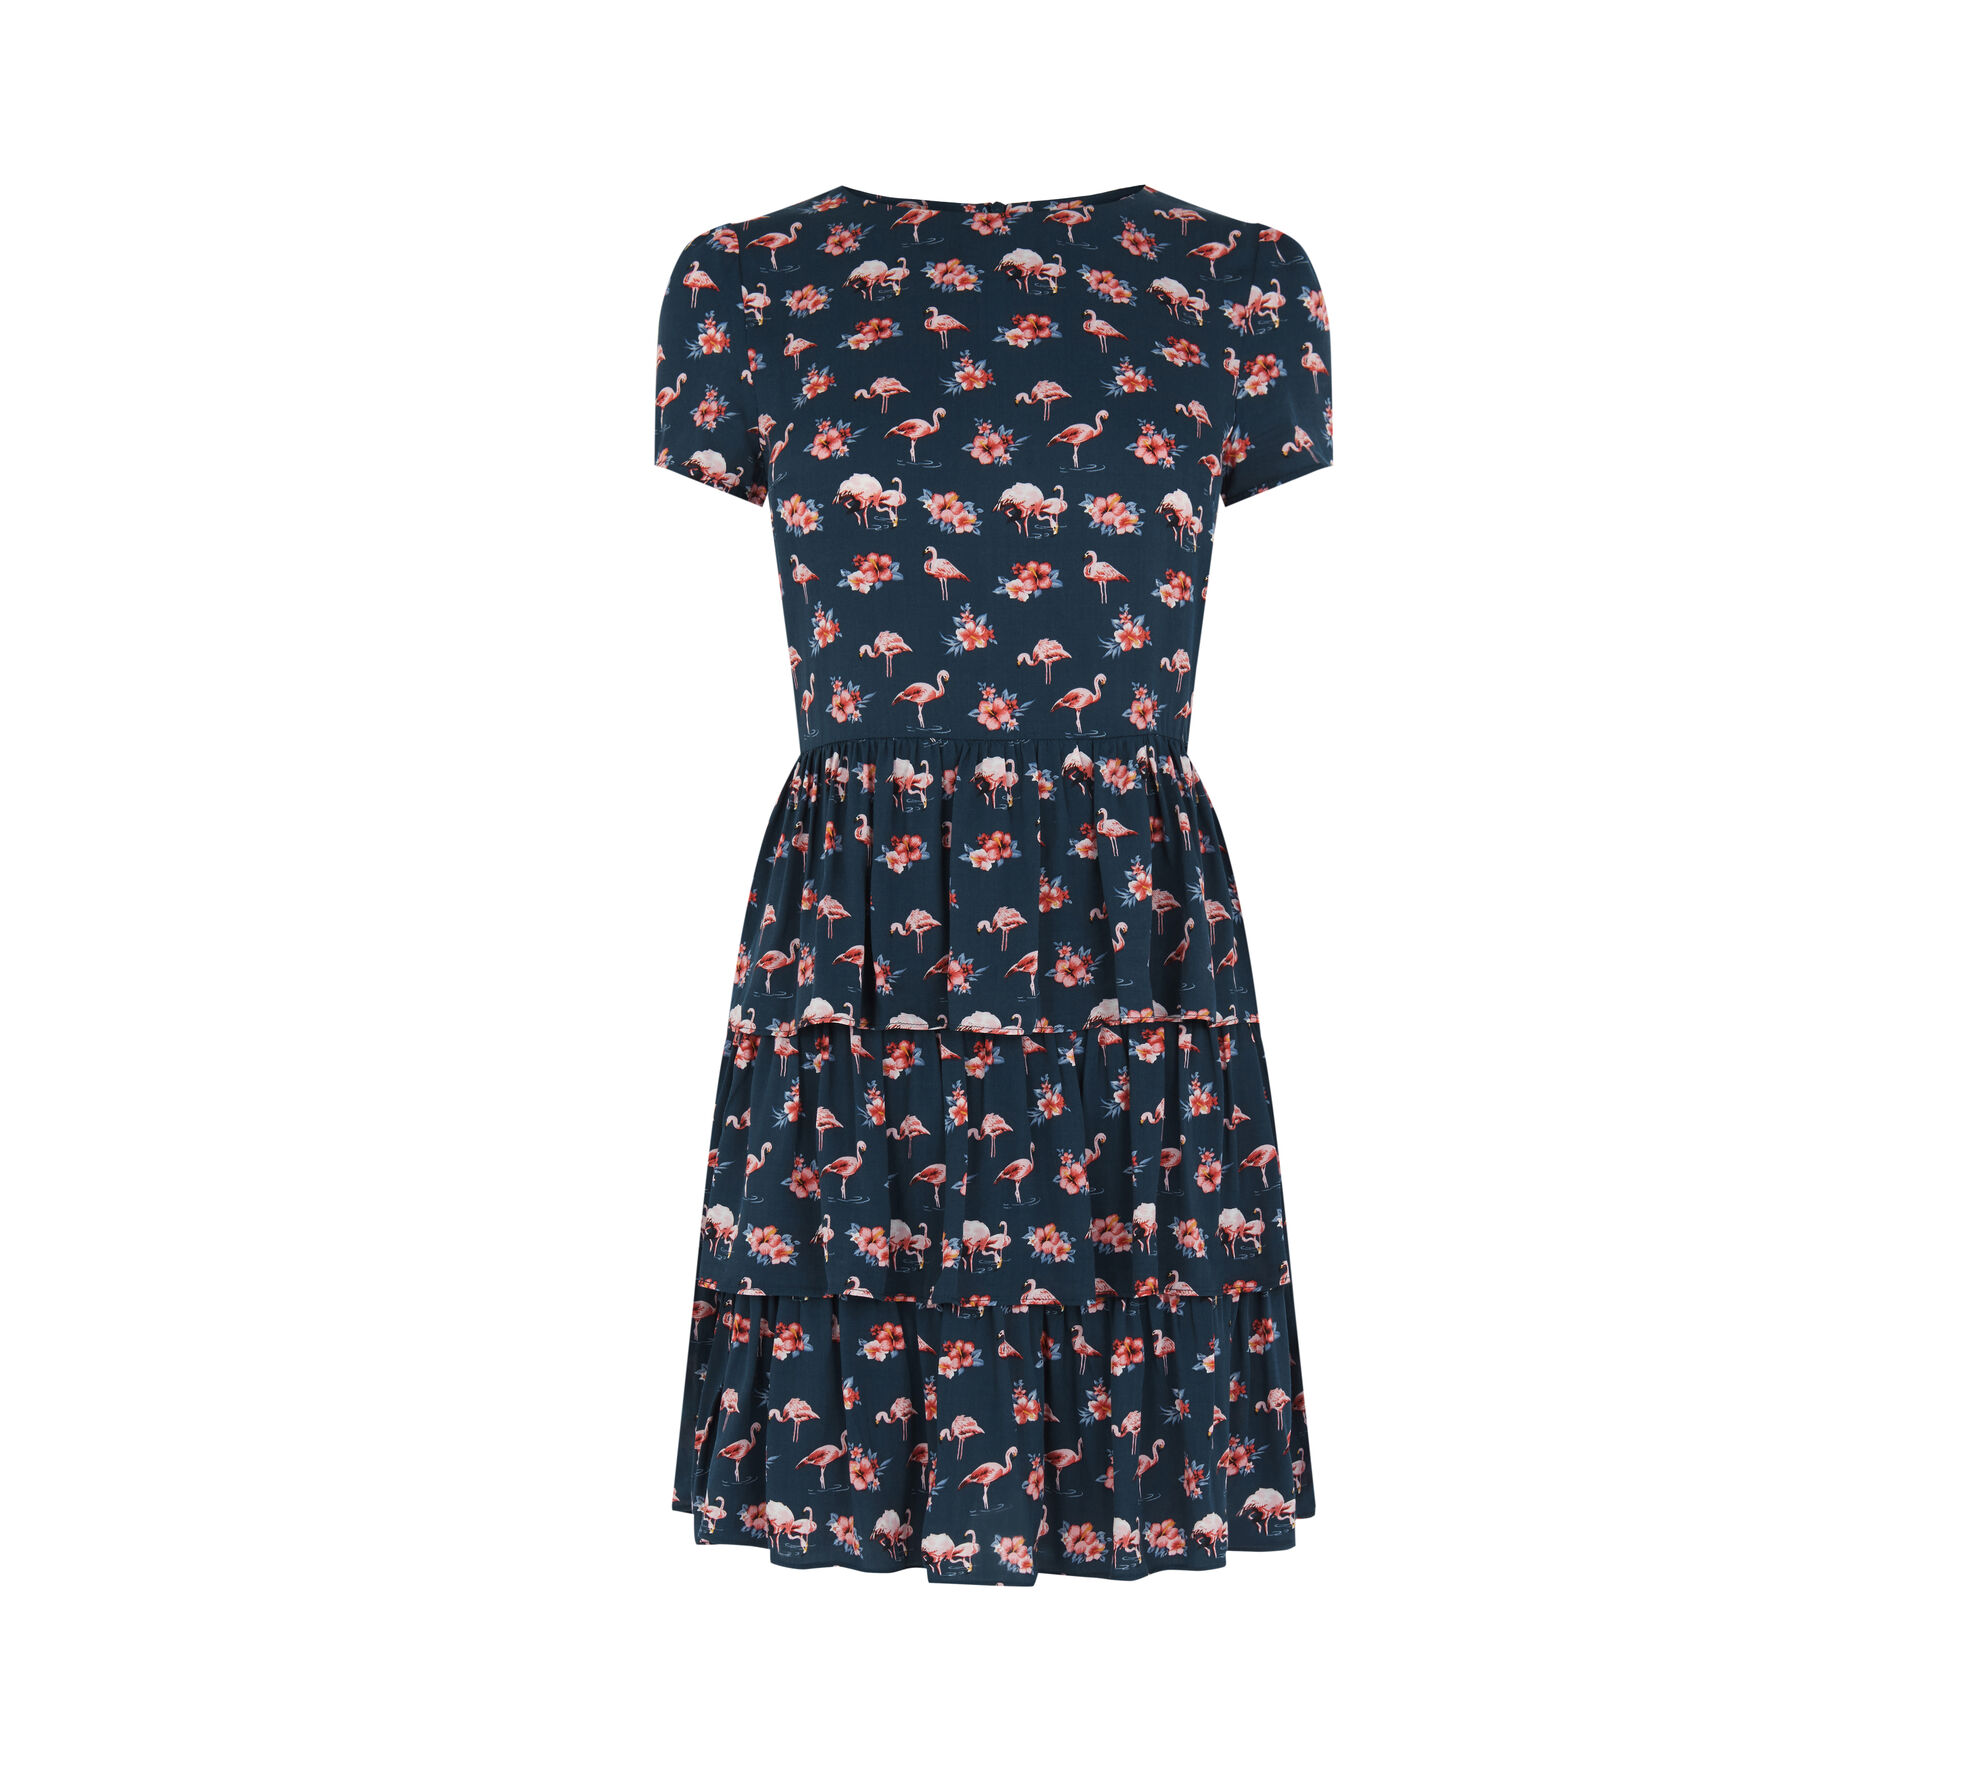 FLAMINGO PRINT DRESS | Oasis